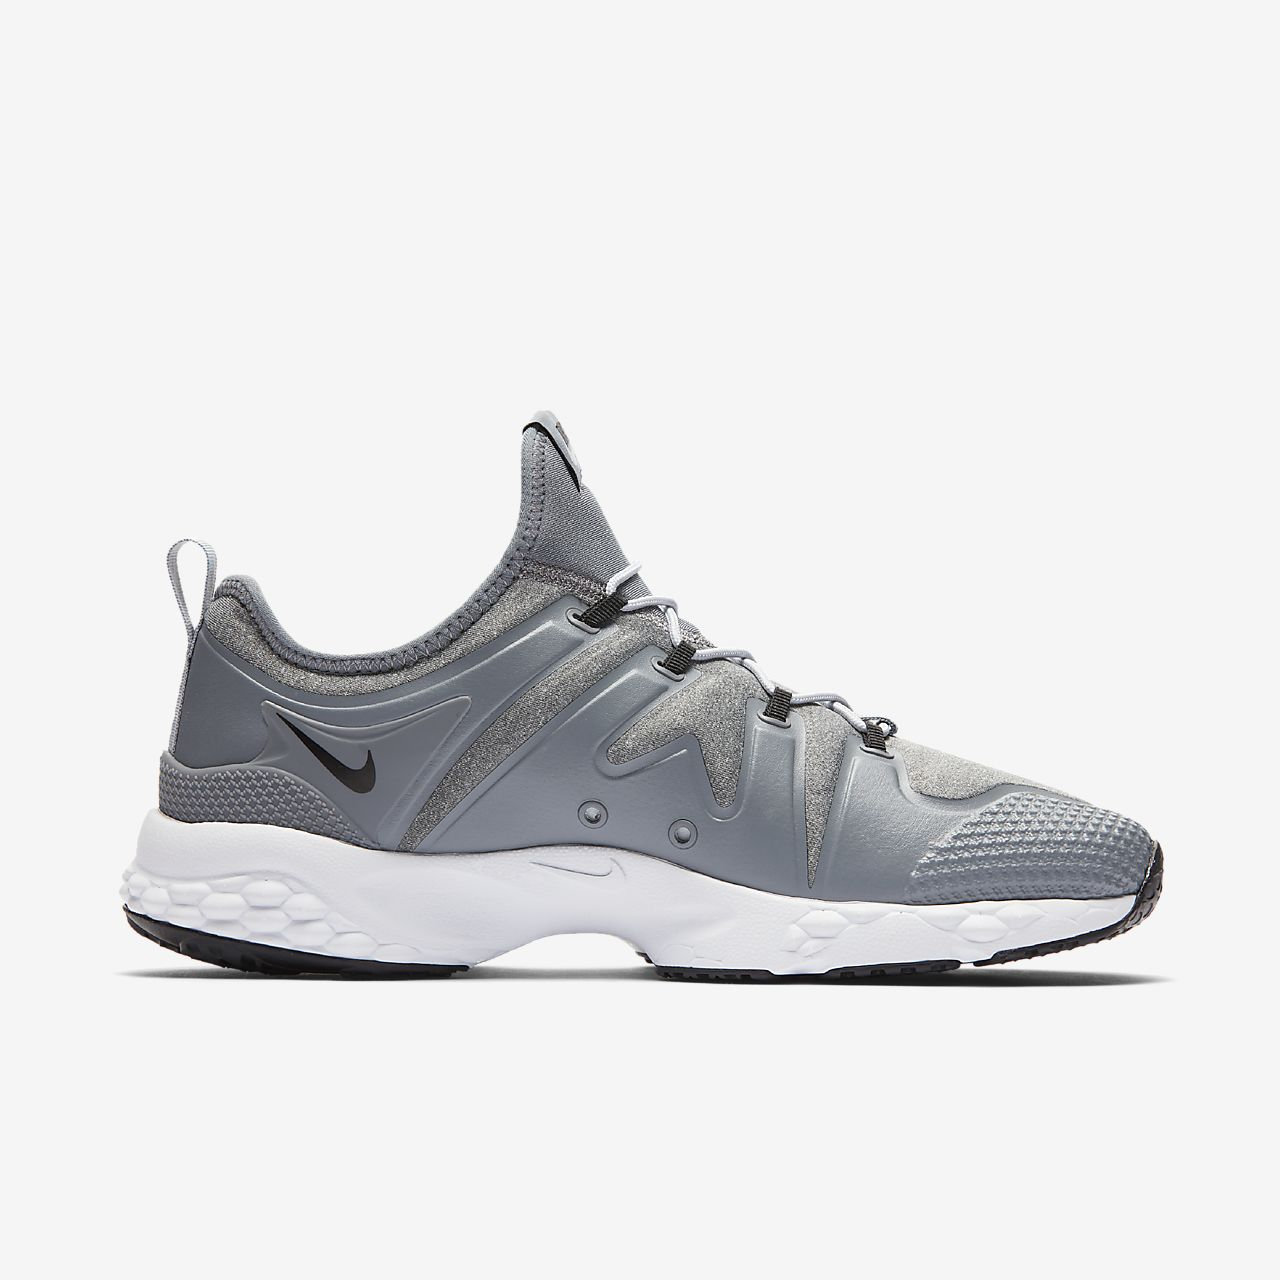 Nike Air Zoom LWP '16 Wolf Grey/ Black-Cool Grey yGrCpSI